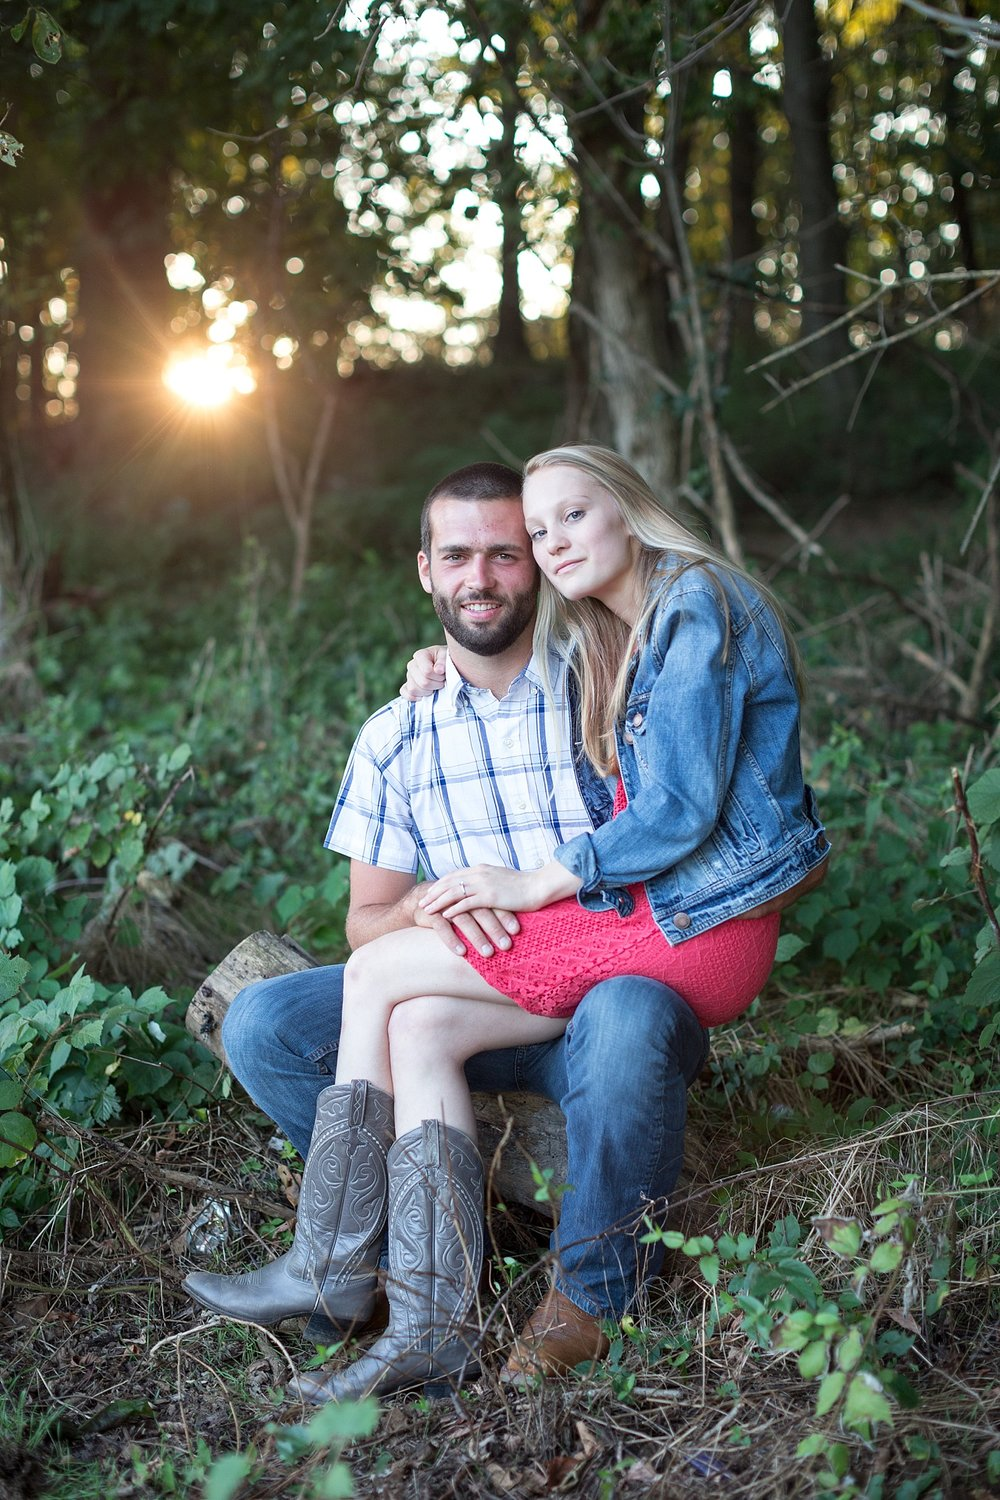 Romantic engagement session in sunflower field lancaster pa wedding photographer photo_0040.jpg